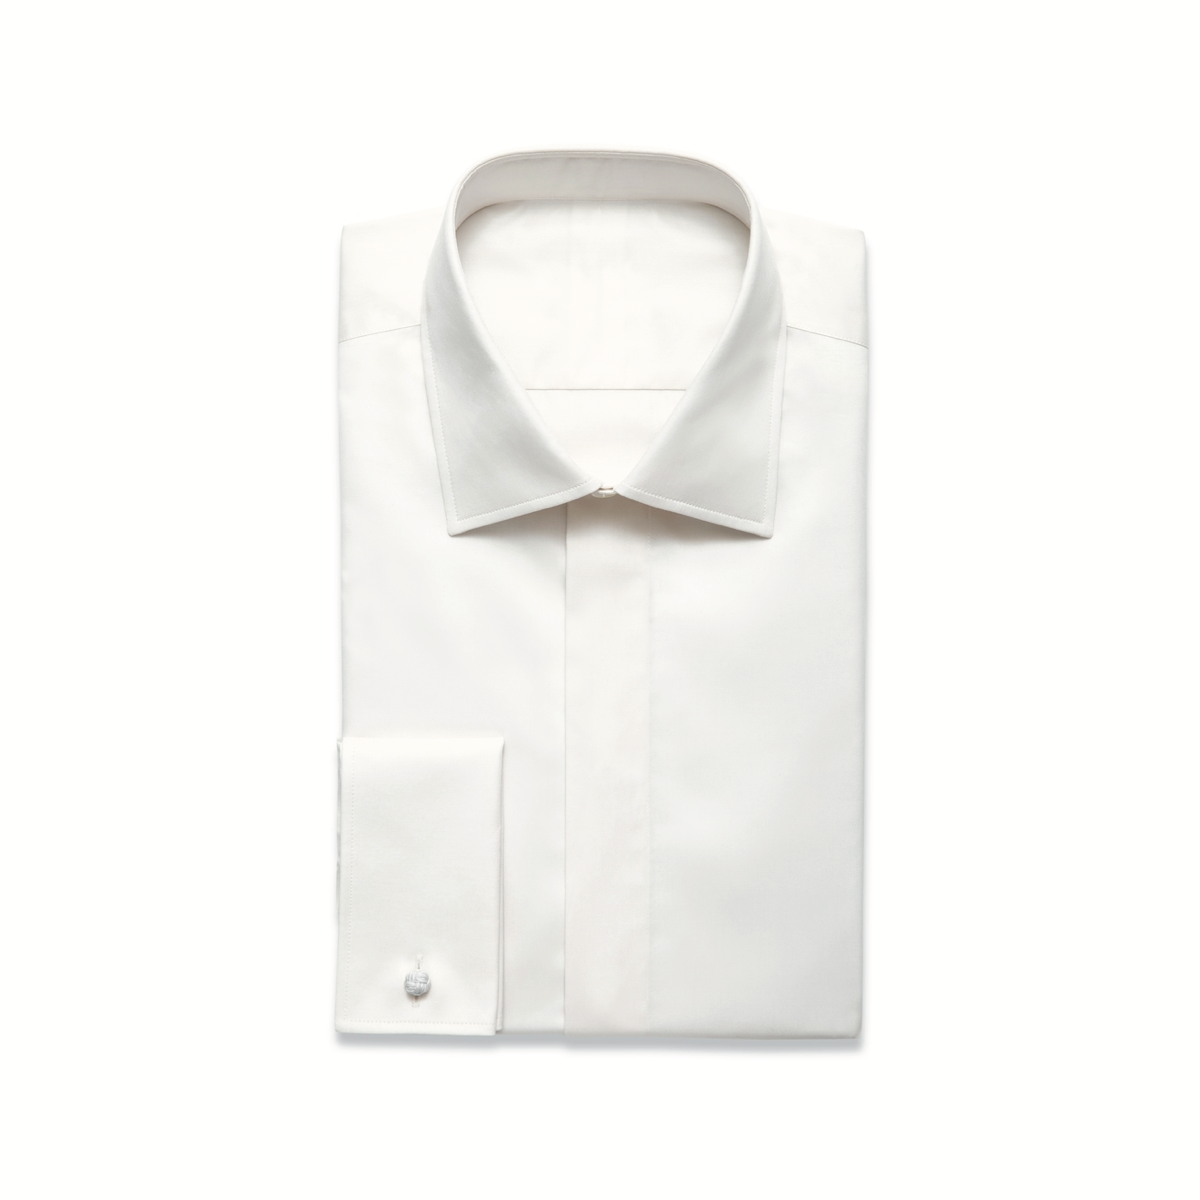 eternal-sv.tk: Double Cuff Shirts. From The Community. New Mens Dress Shirt White French Cuff Tailored Slim Fit Wrinkle Free By Azar Man. by AZAR MAN. $ - $ $ 19 $ 28 95 Prime. FREE Shipping on eligible orders. Some sizes are Prime eligible. out of 5 stars Product Features.